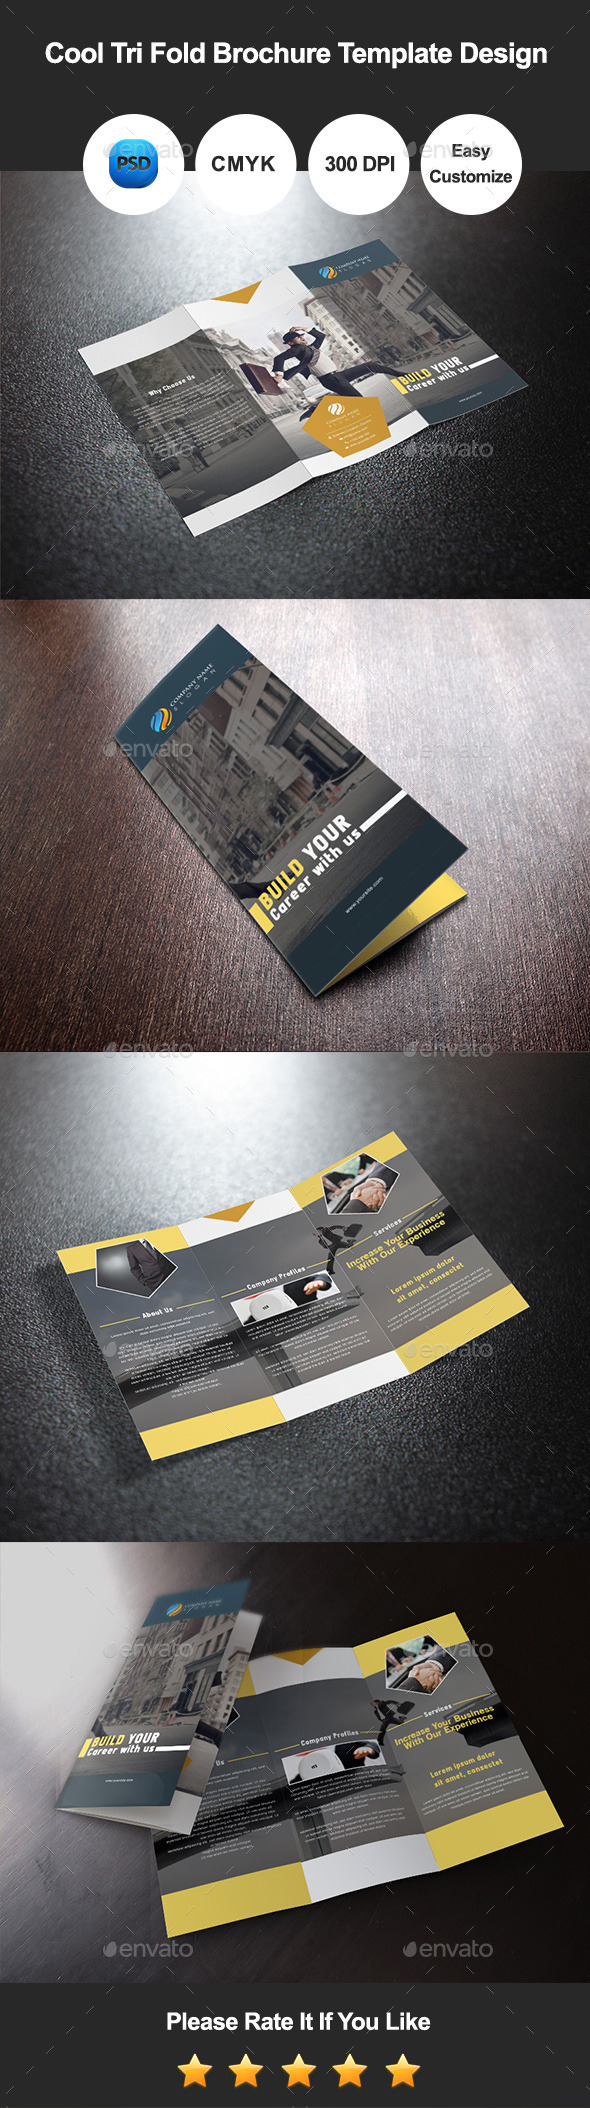 GraphicRiver Cool Tri Fold Brochure Template Design 10391598